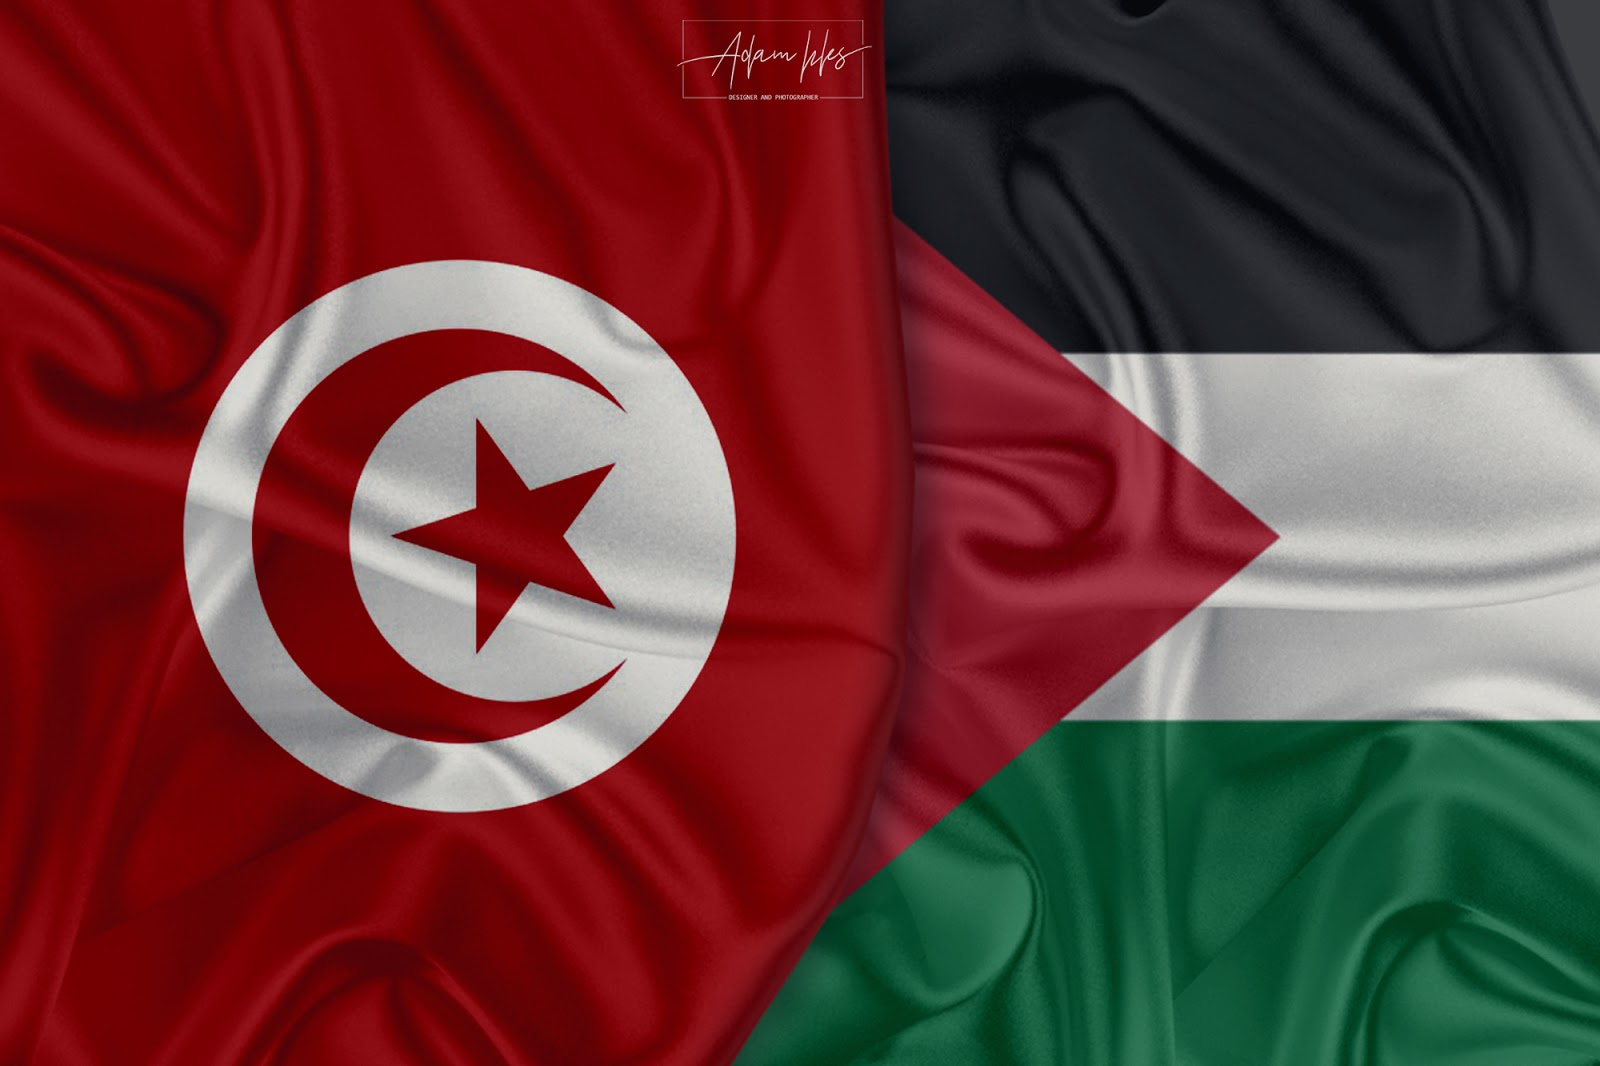 Tunisia and Palestine